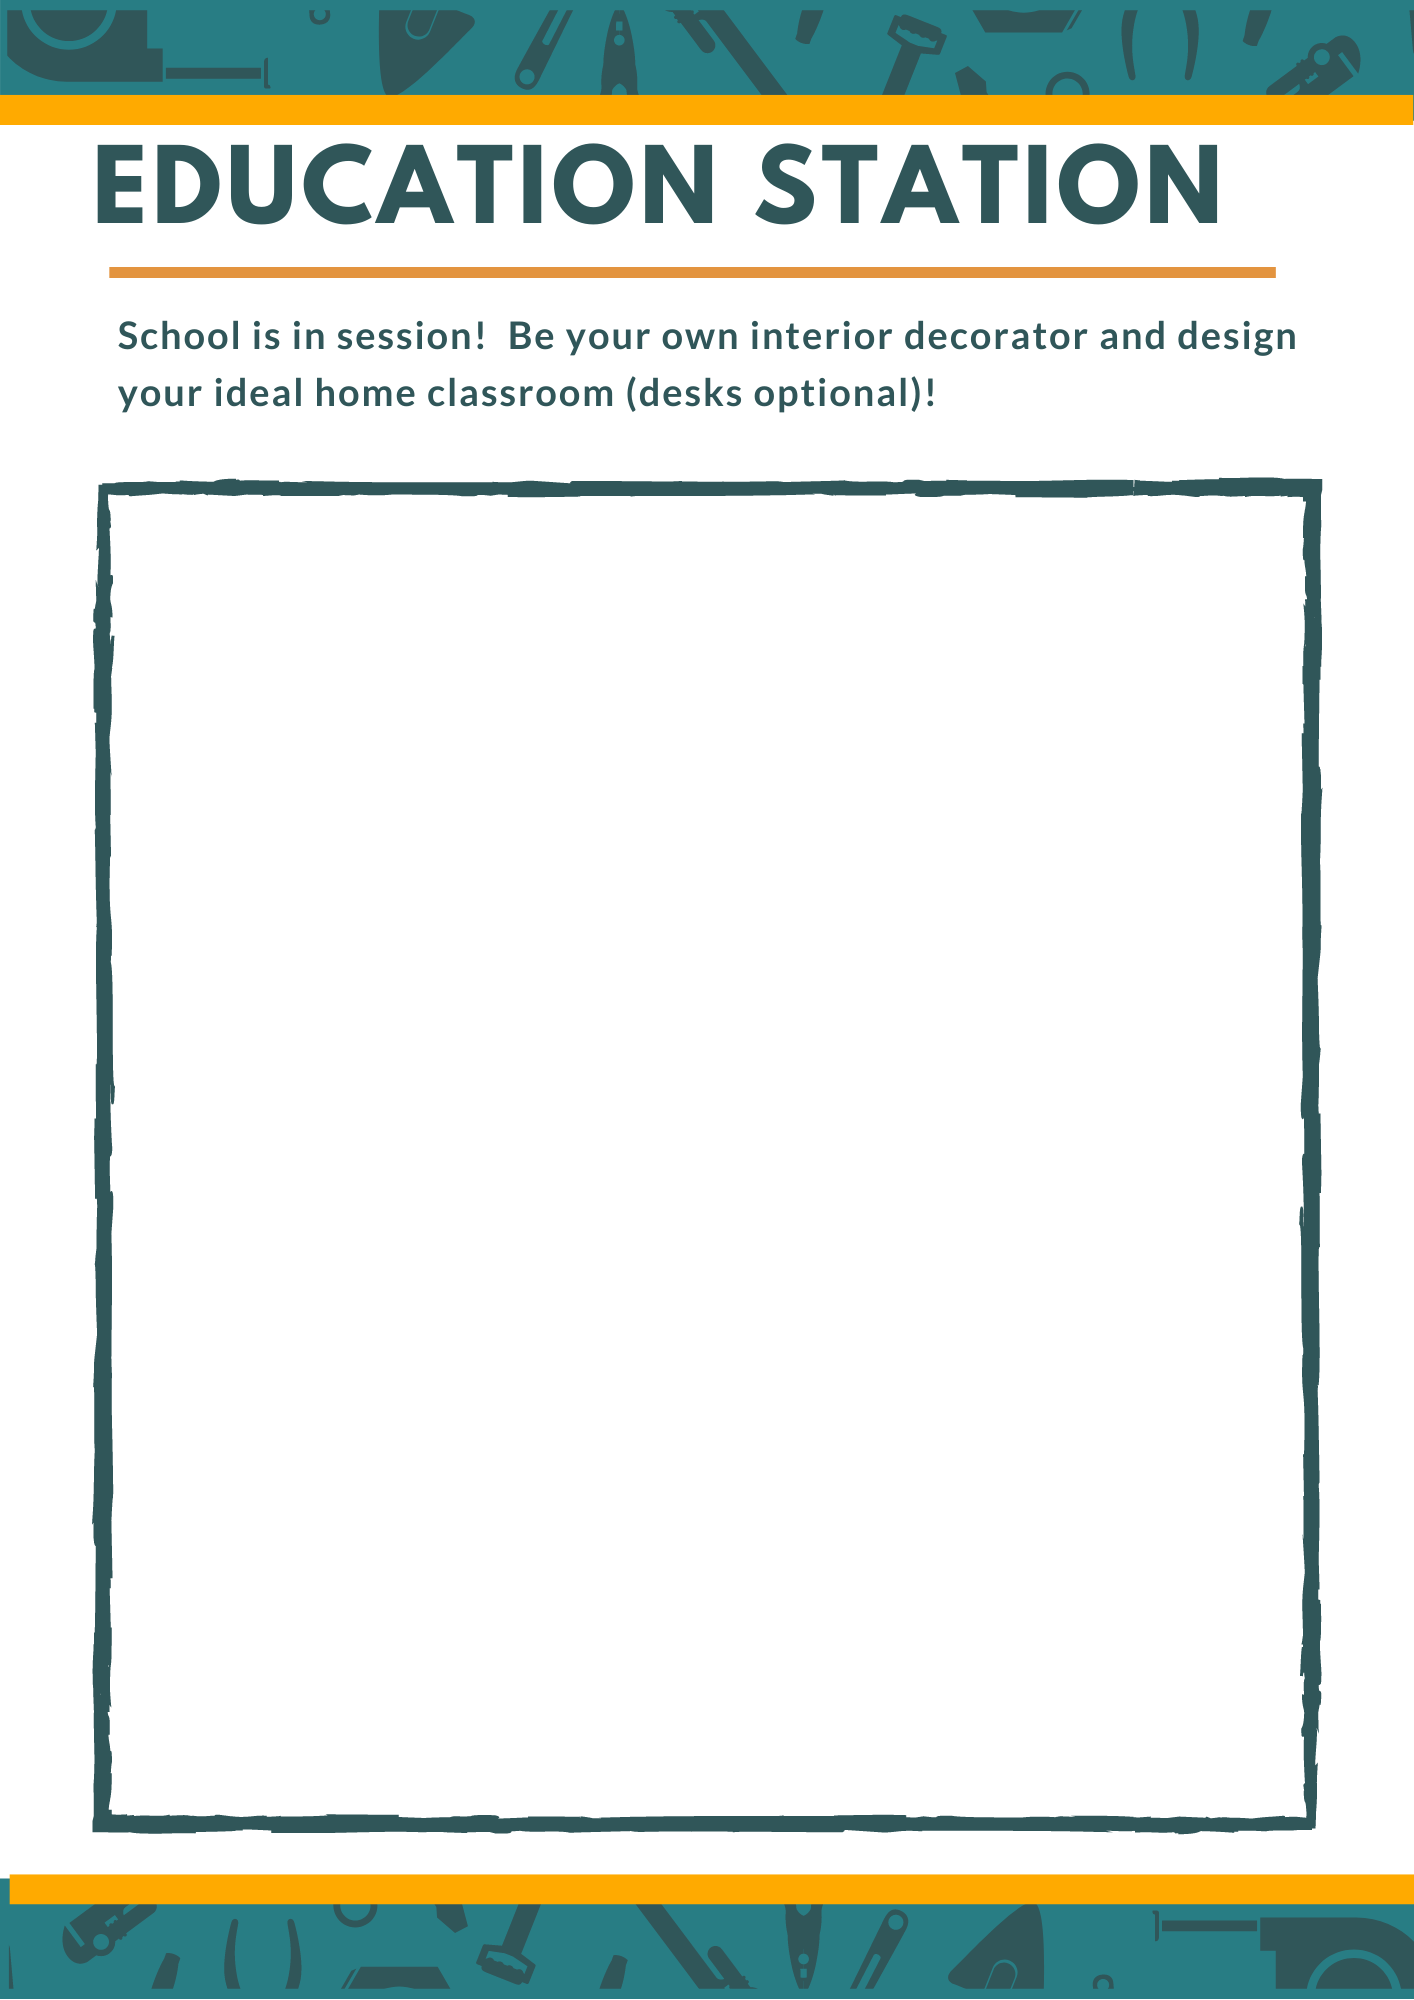 education-station-sheet.png